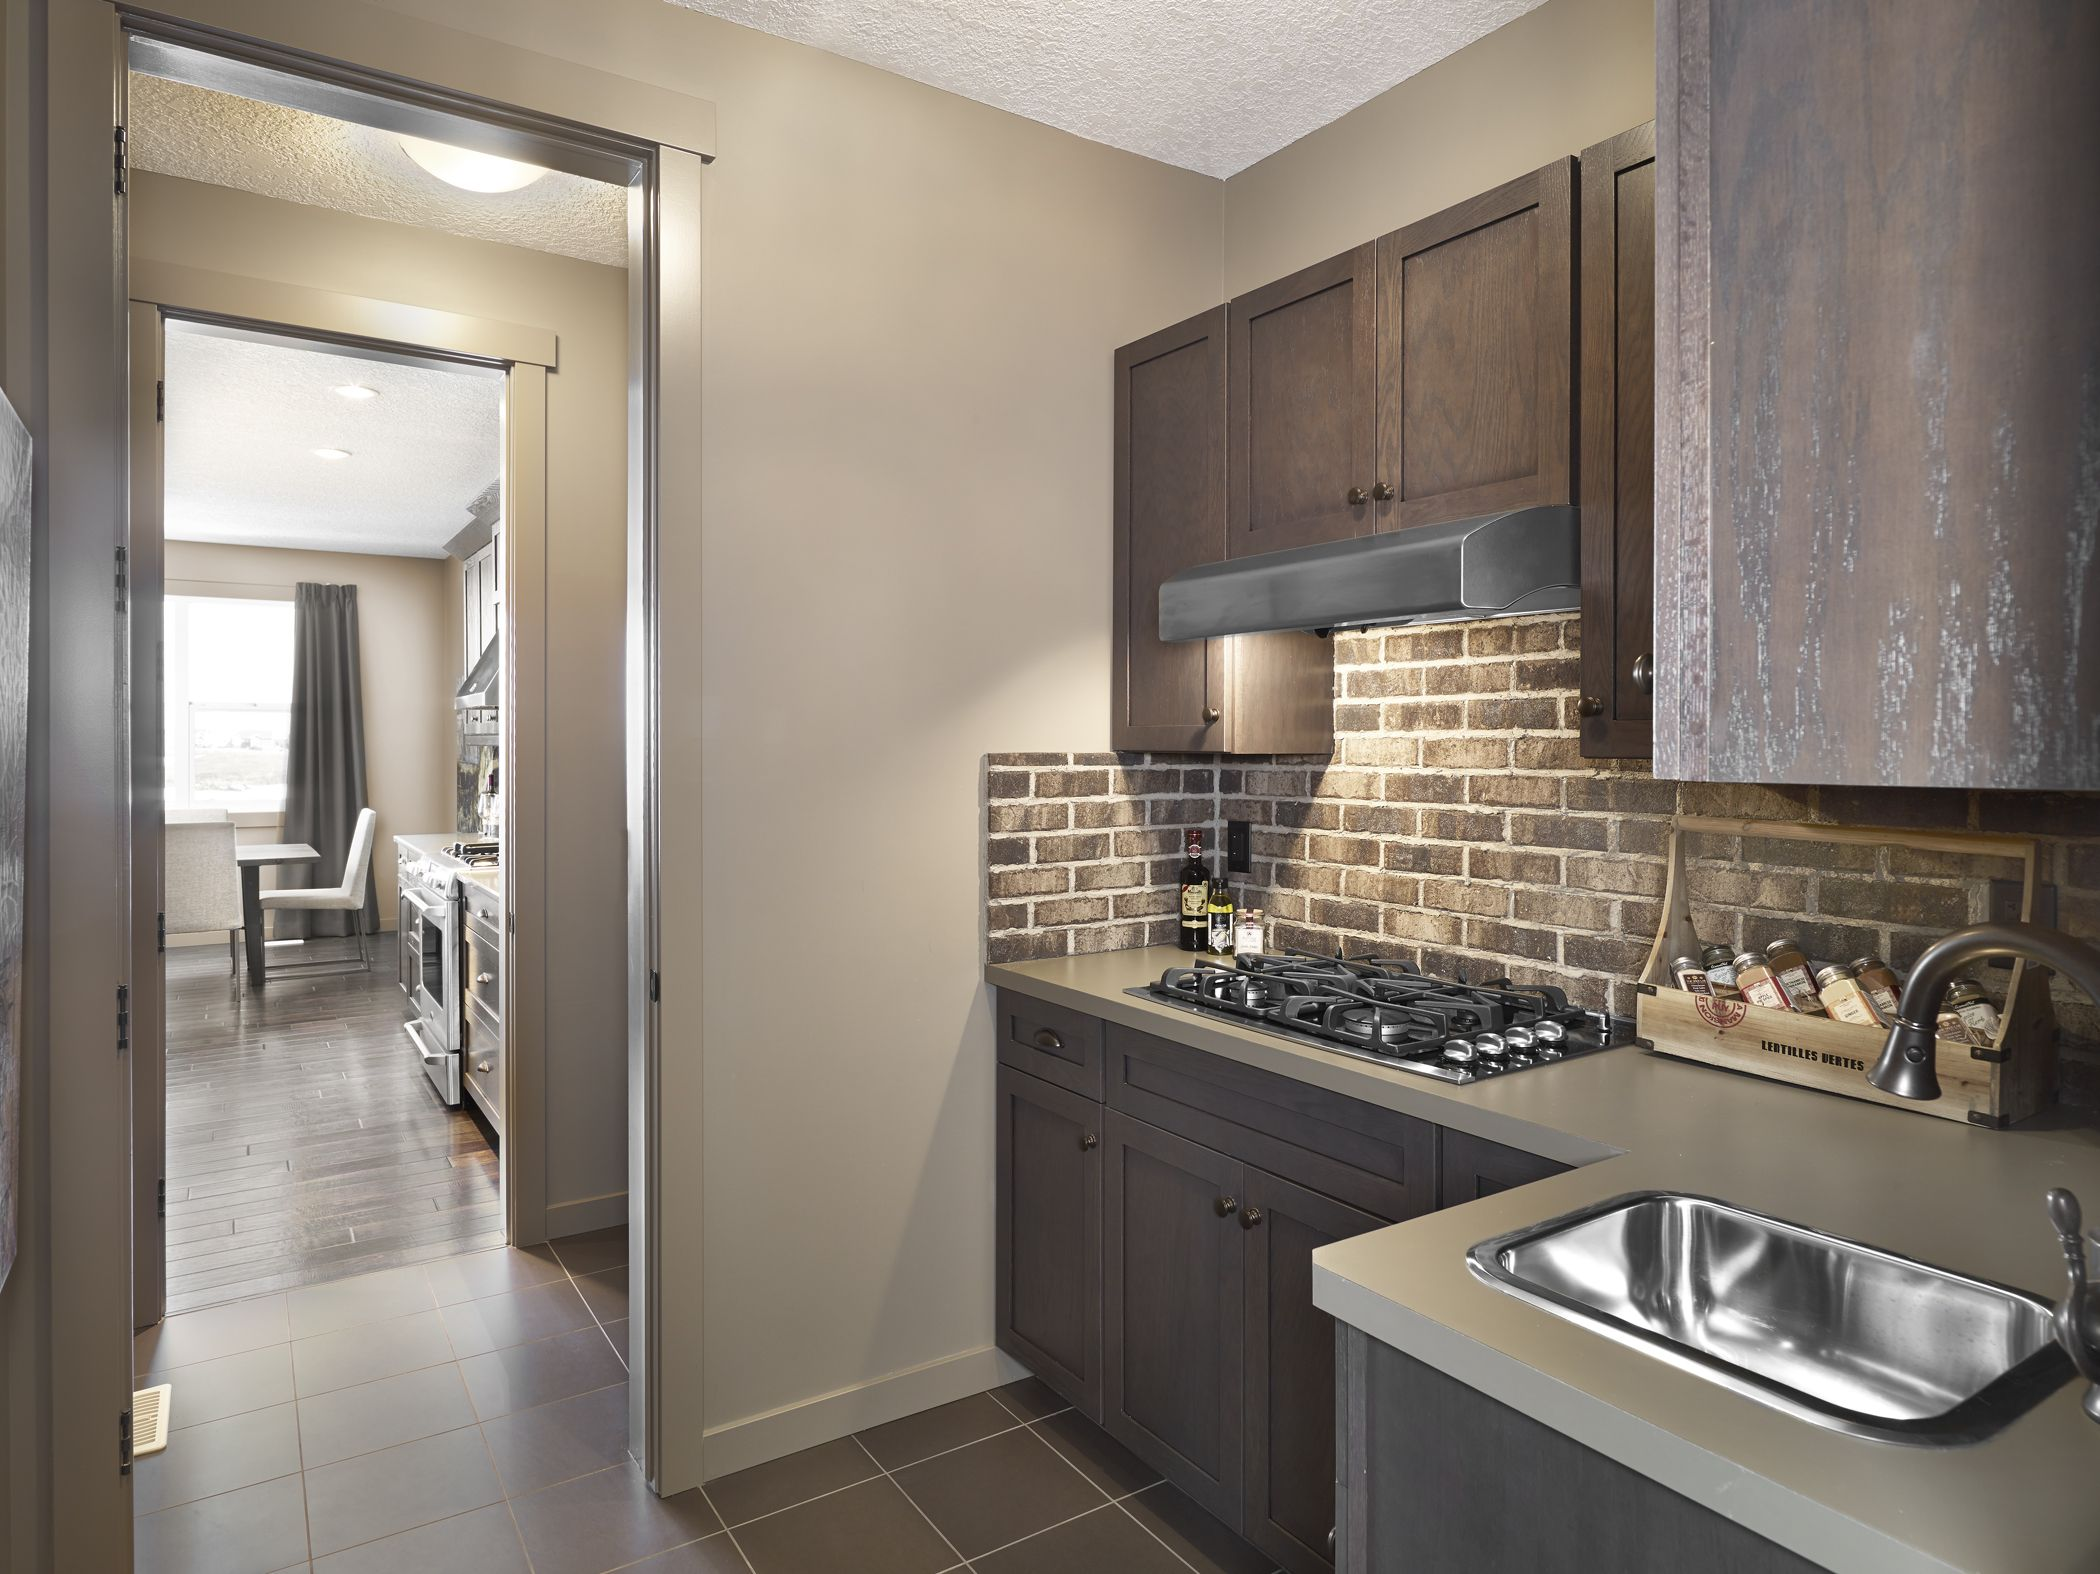 Spice Kitchen Separate From The Other Kitchen In The House To Isolate The Rest Of The House From The Odors Great For Kitchen Design Home Kitchens Kitchen